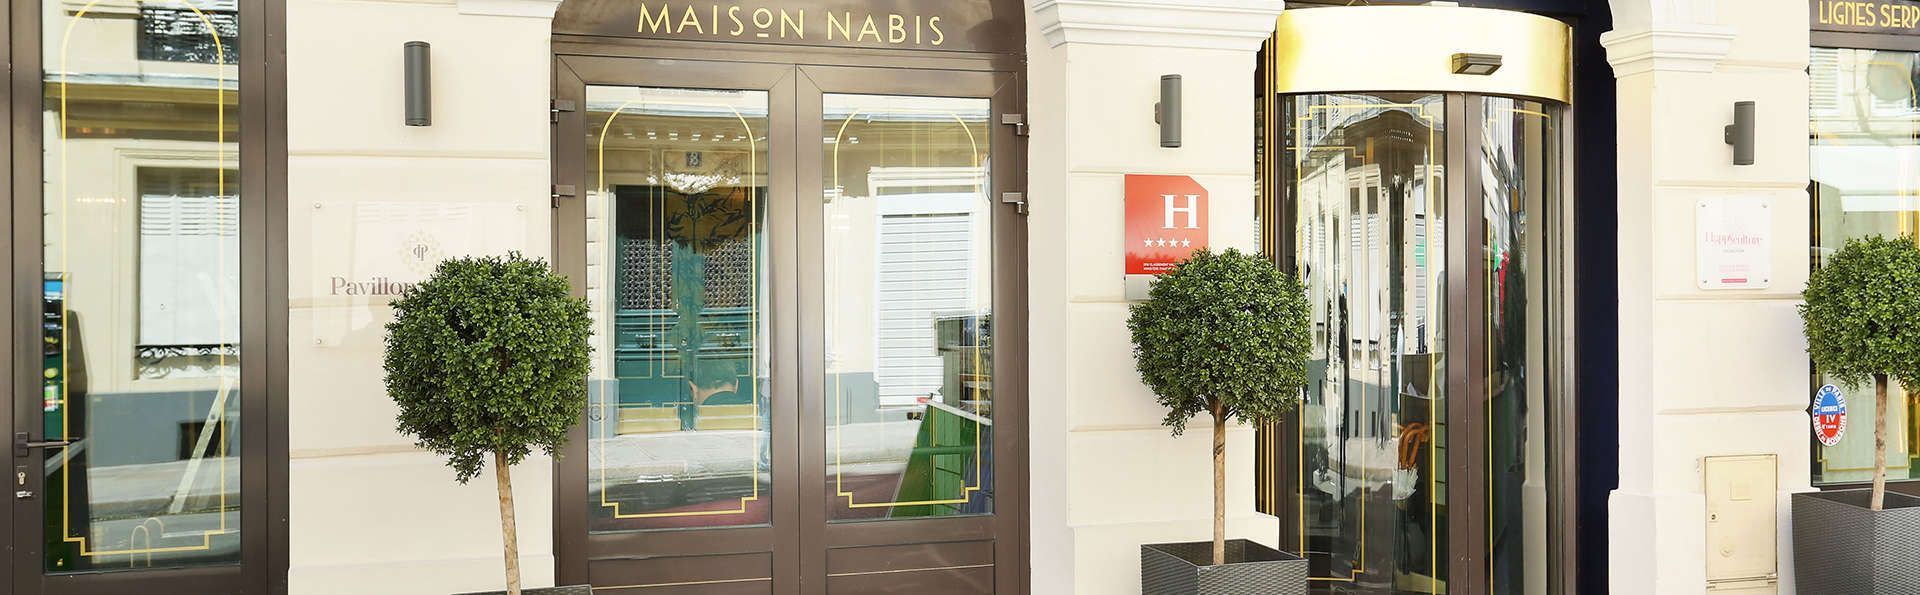 Maison Nabis by HappyCulture - EDIT_entry.jpg